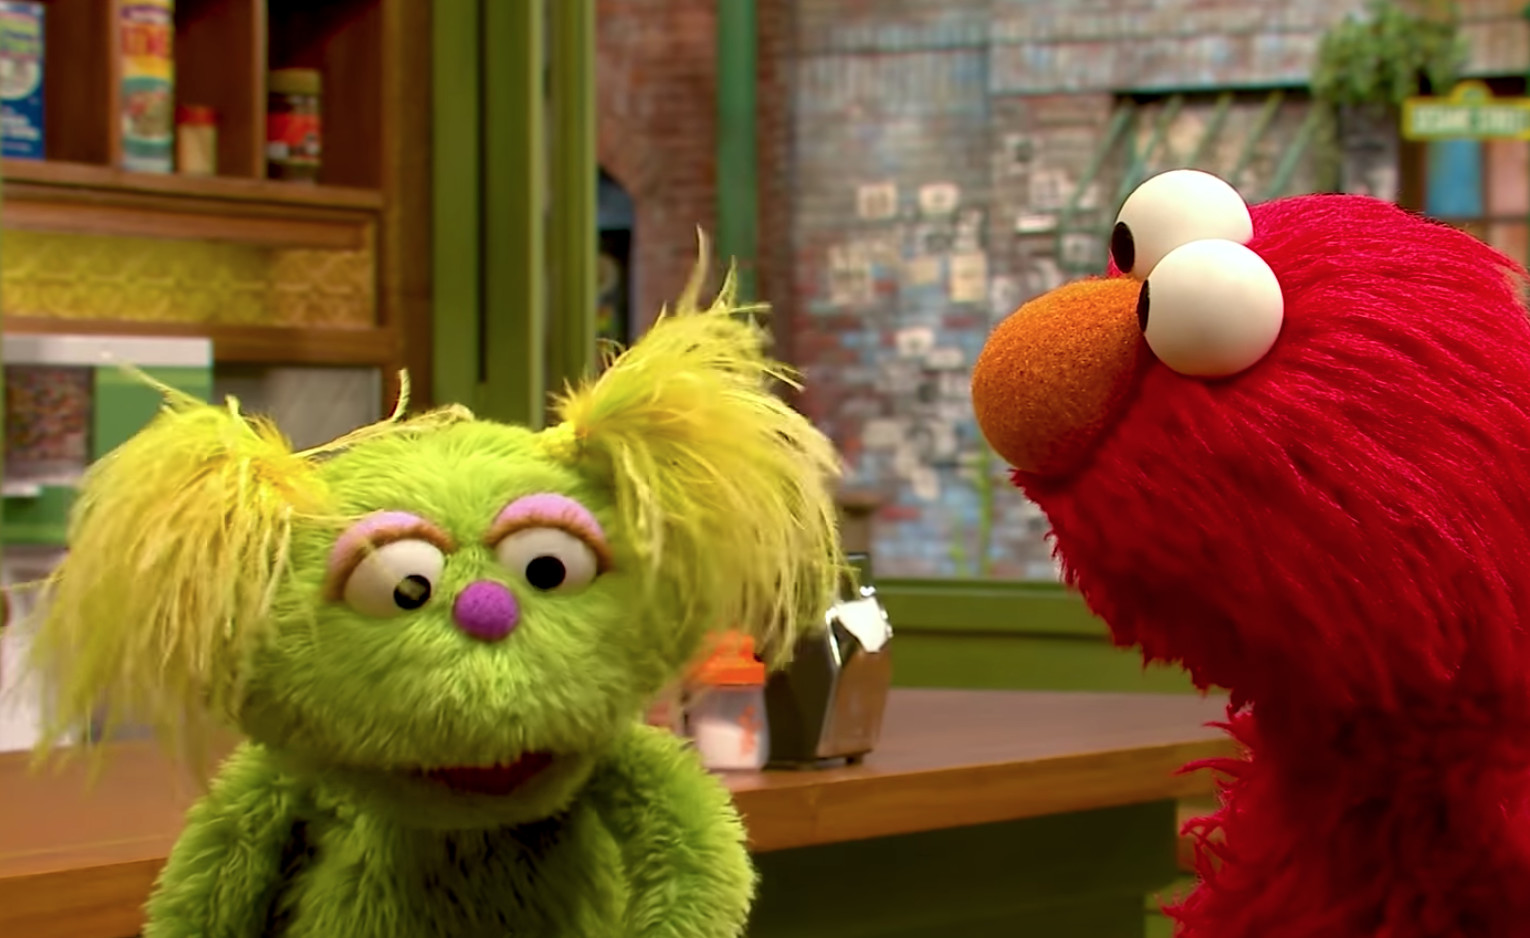 'Sesame Street' Takes on Addiction: 'We're Not Alone'